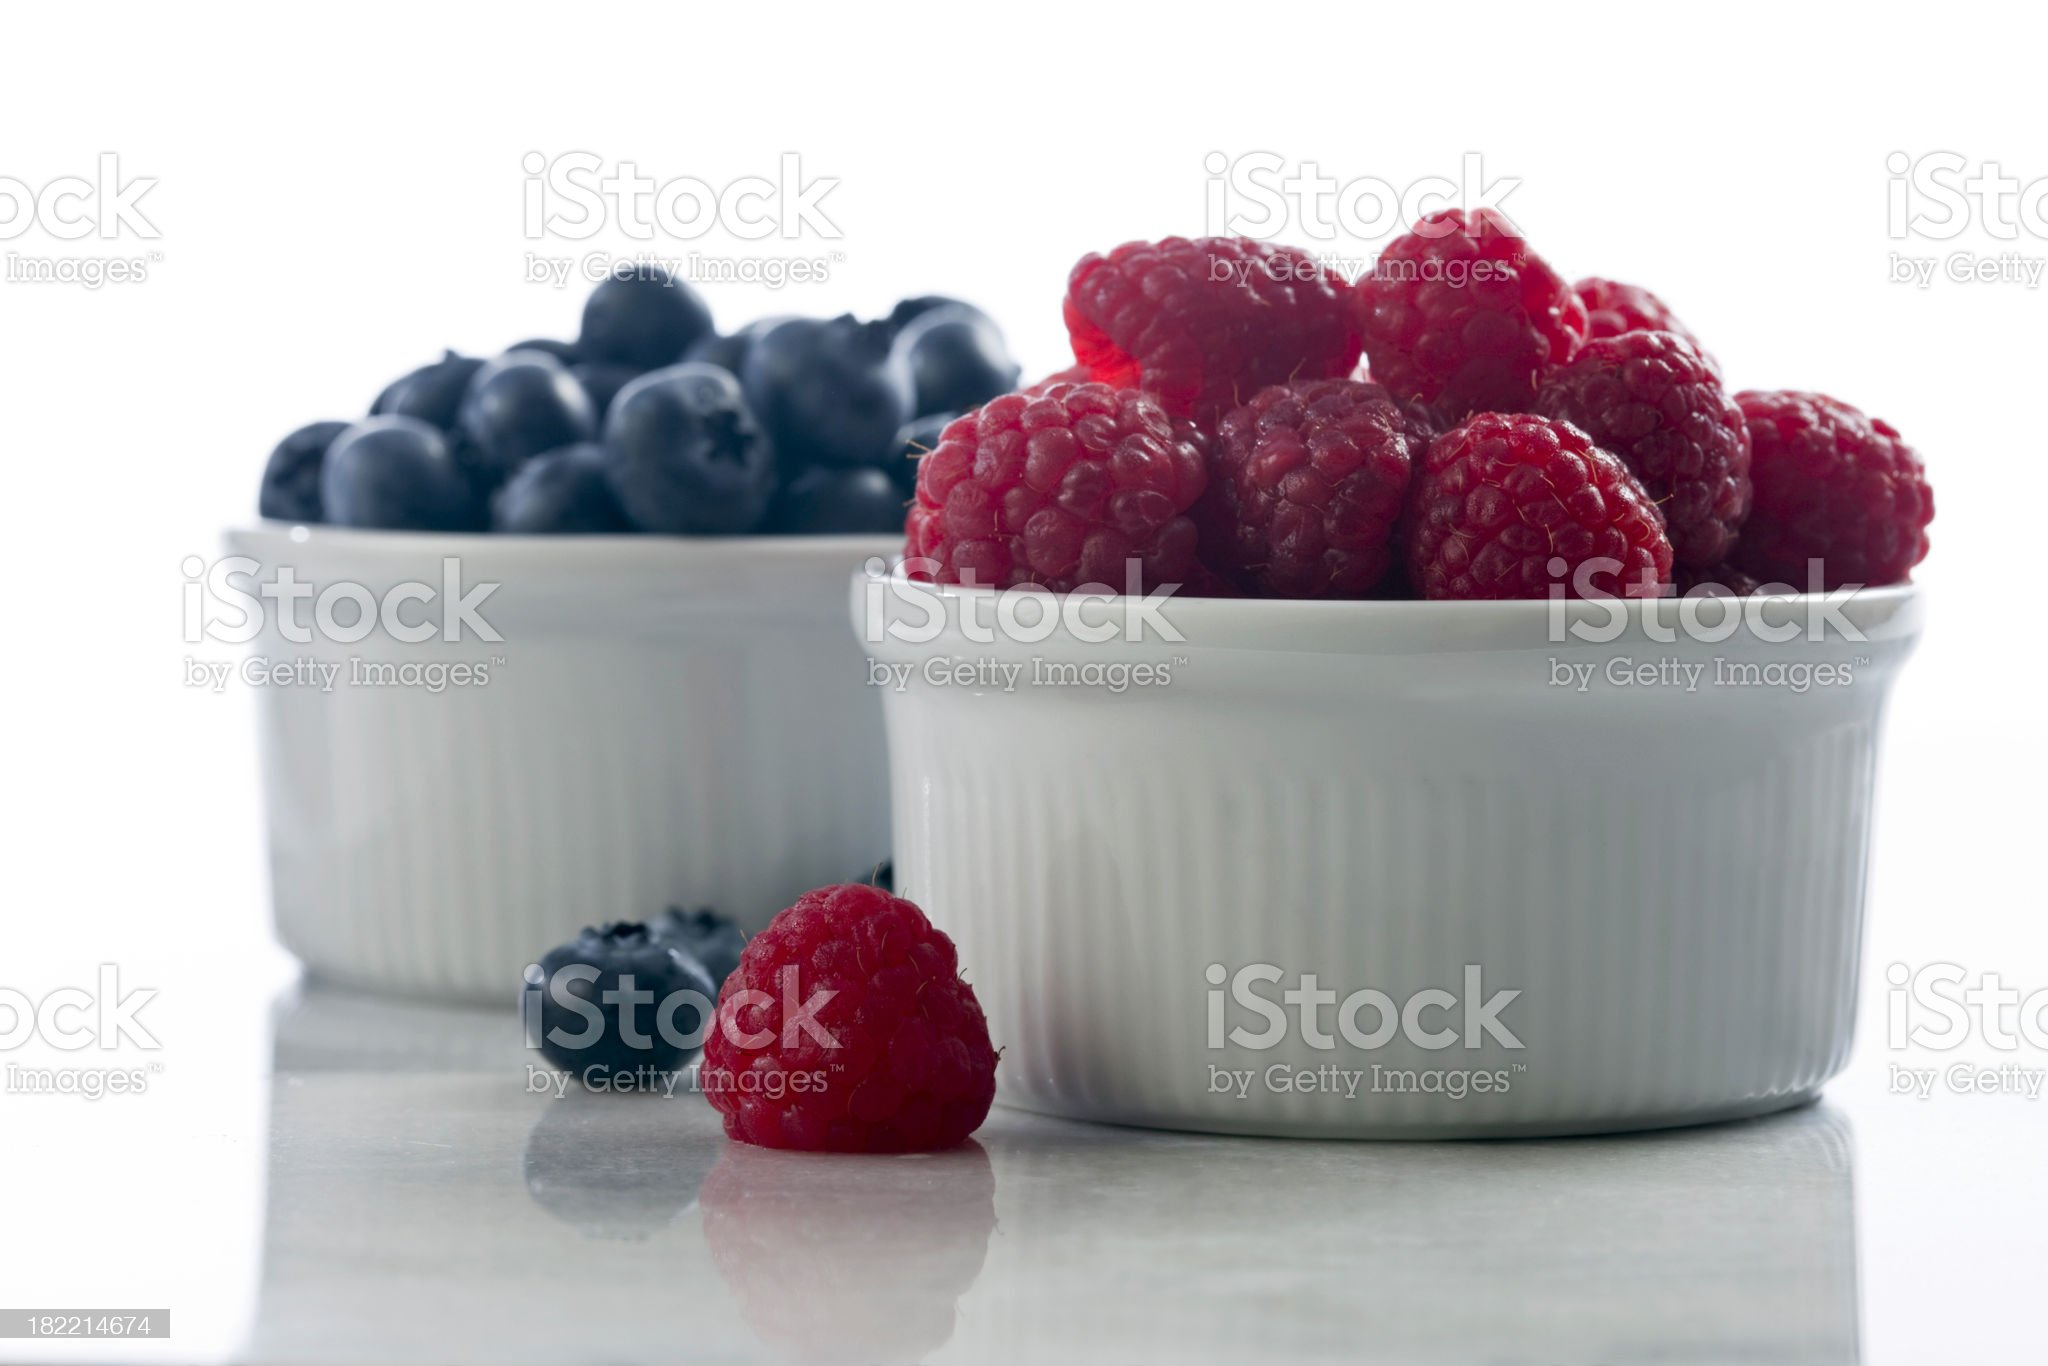 Fruit Raspberries and Blueberries royalty-free stock photo